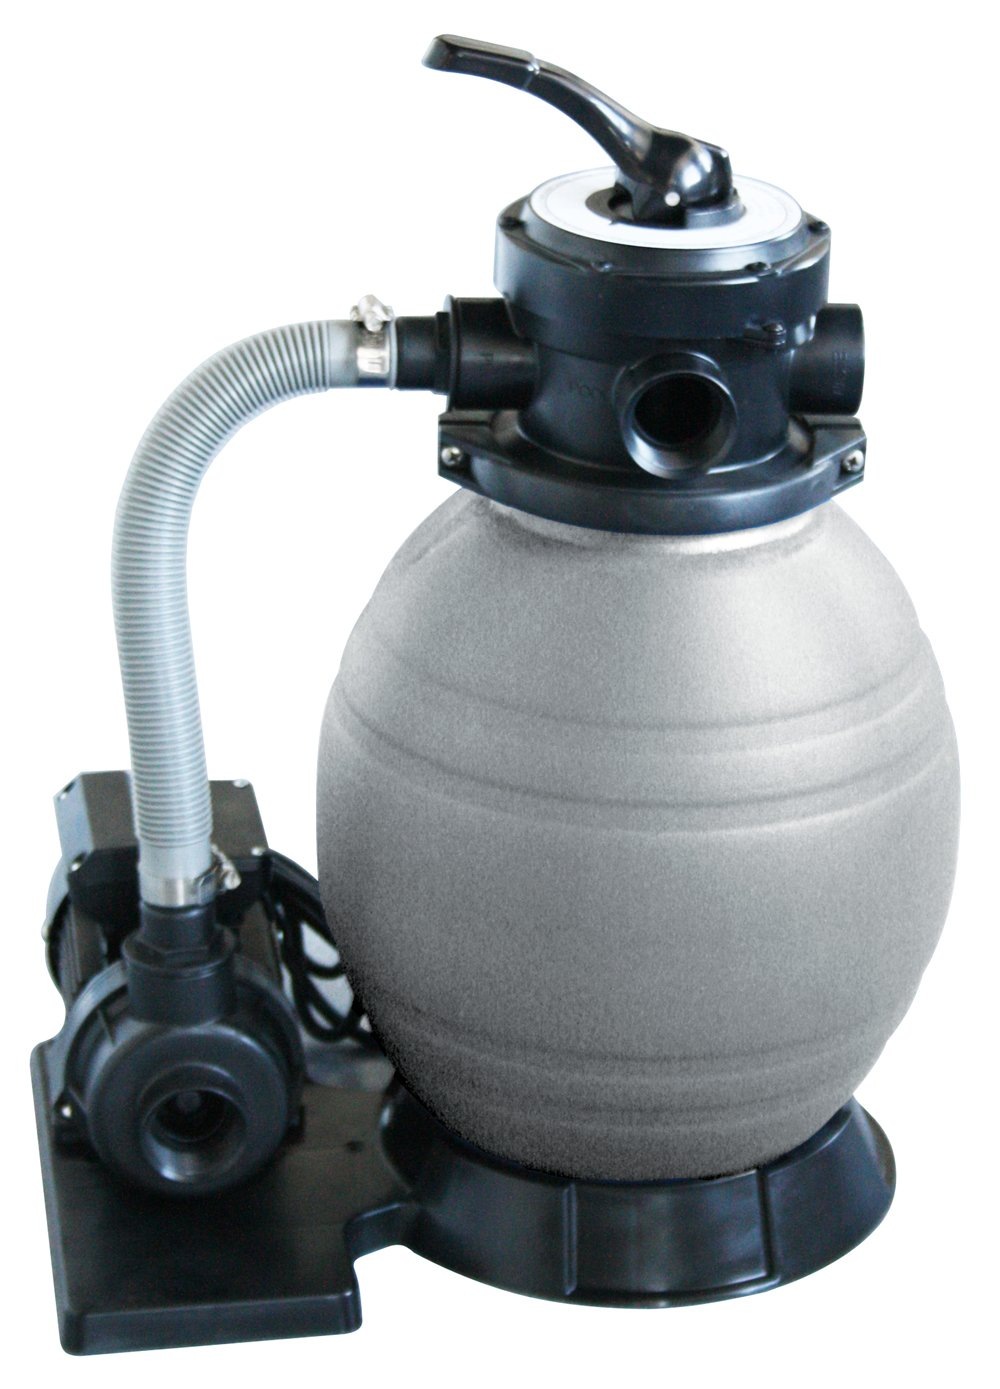 Blue Wave 12-Inch Sand Filter System with 1/2 HP Pump for Above Ground Pools by Blue Wave